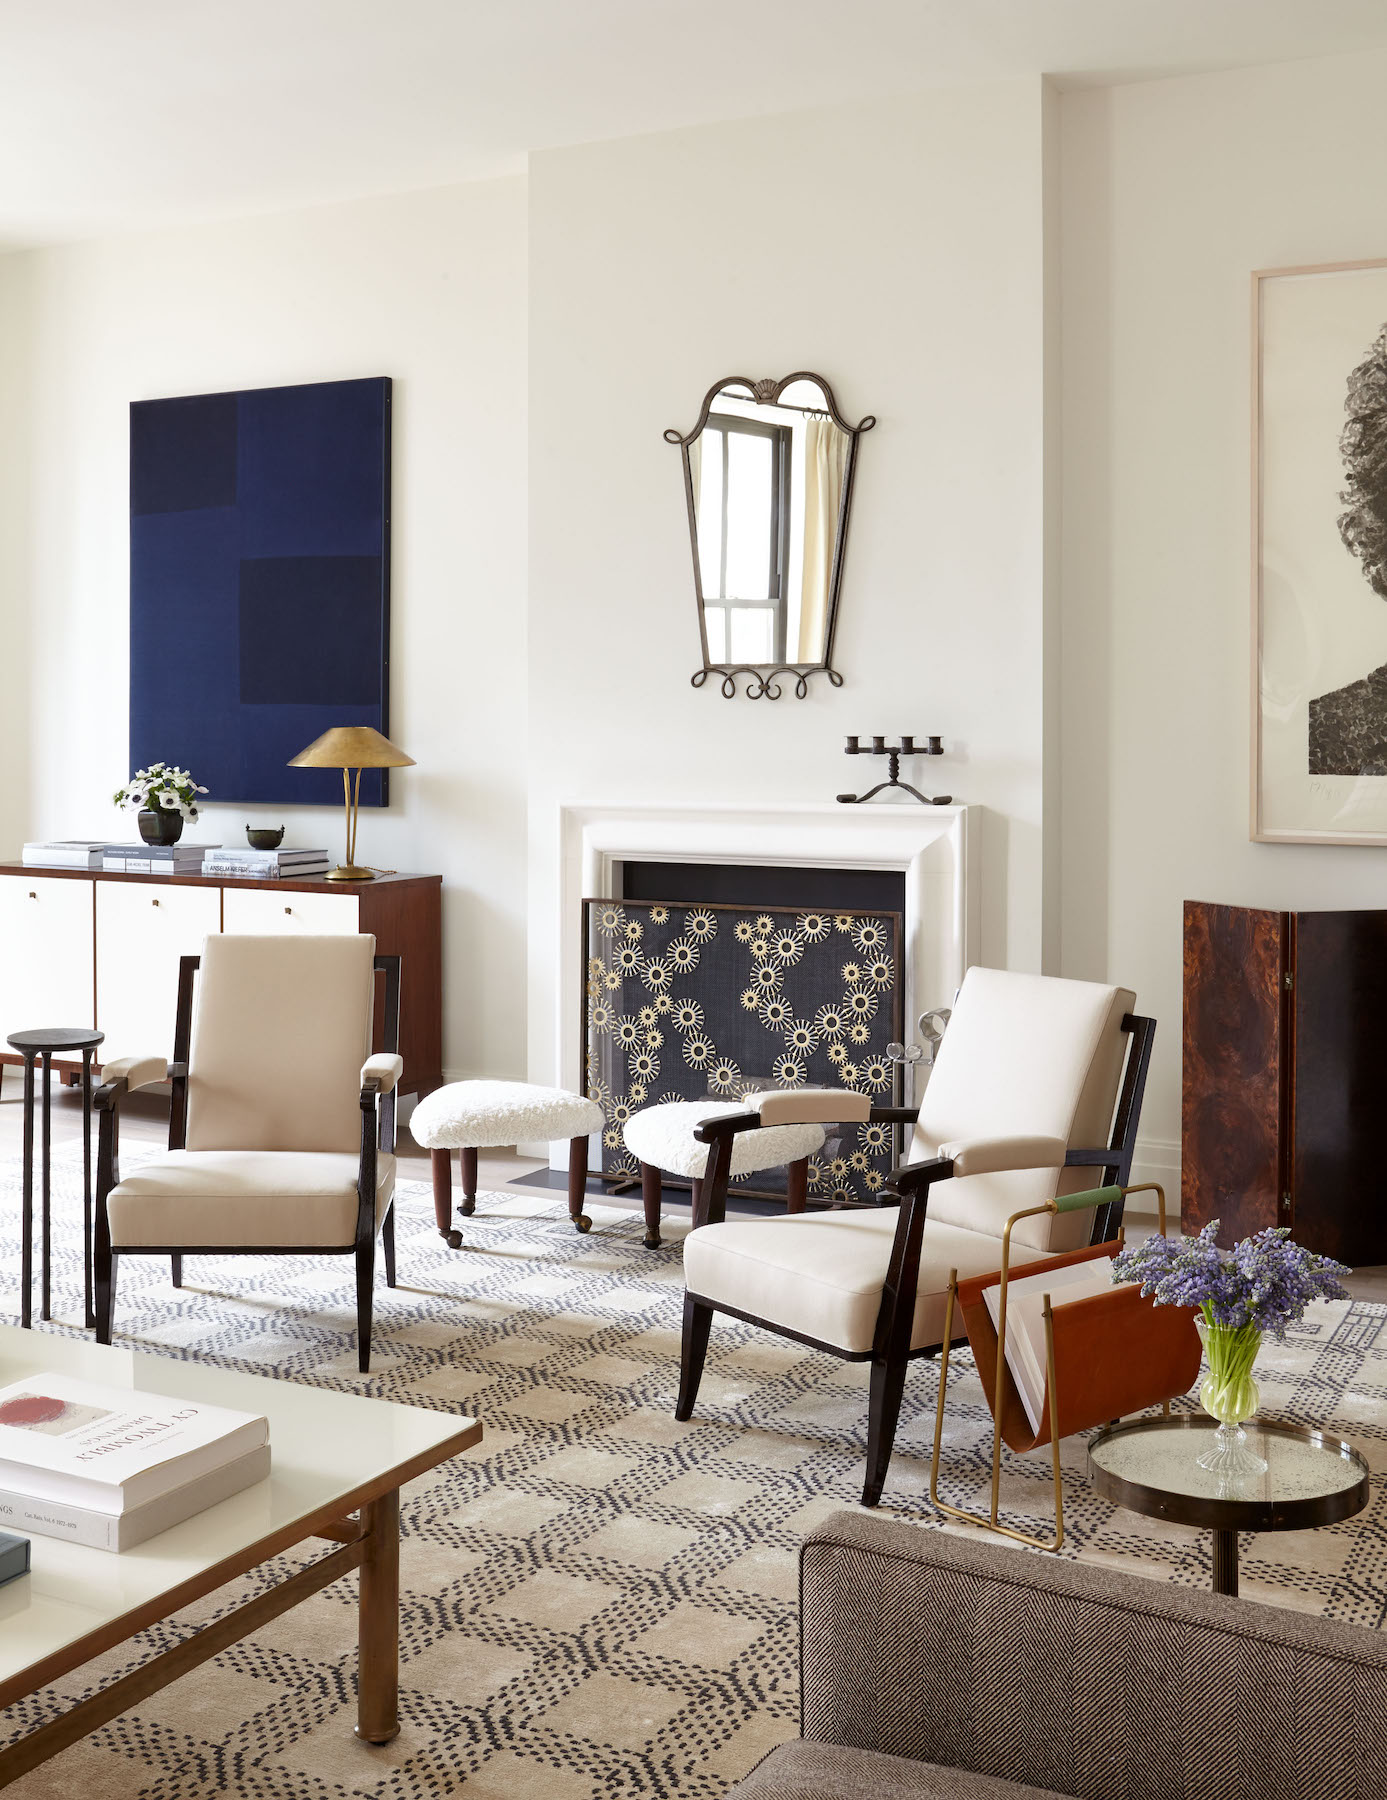 12 Paint Colors That Make You Happier According To Pros